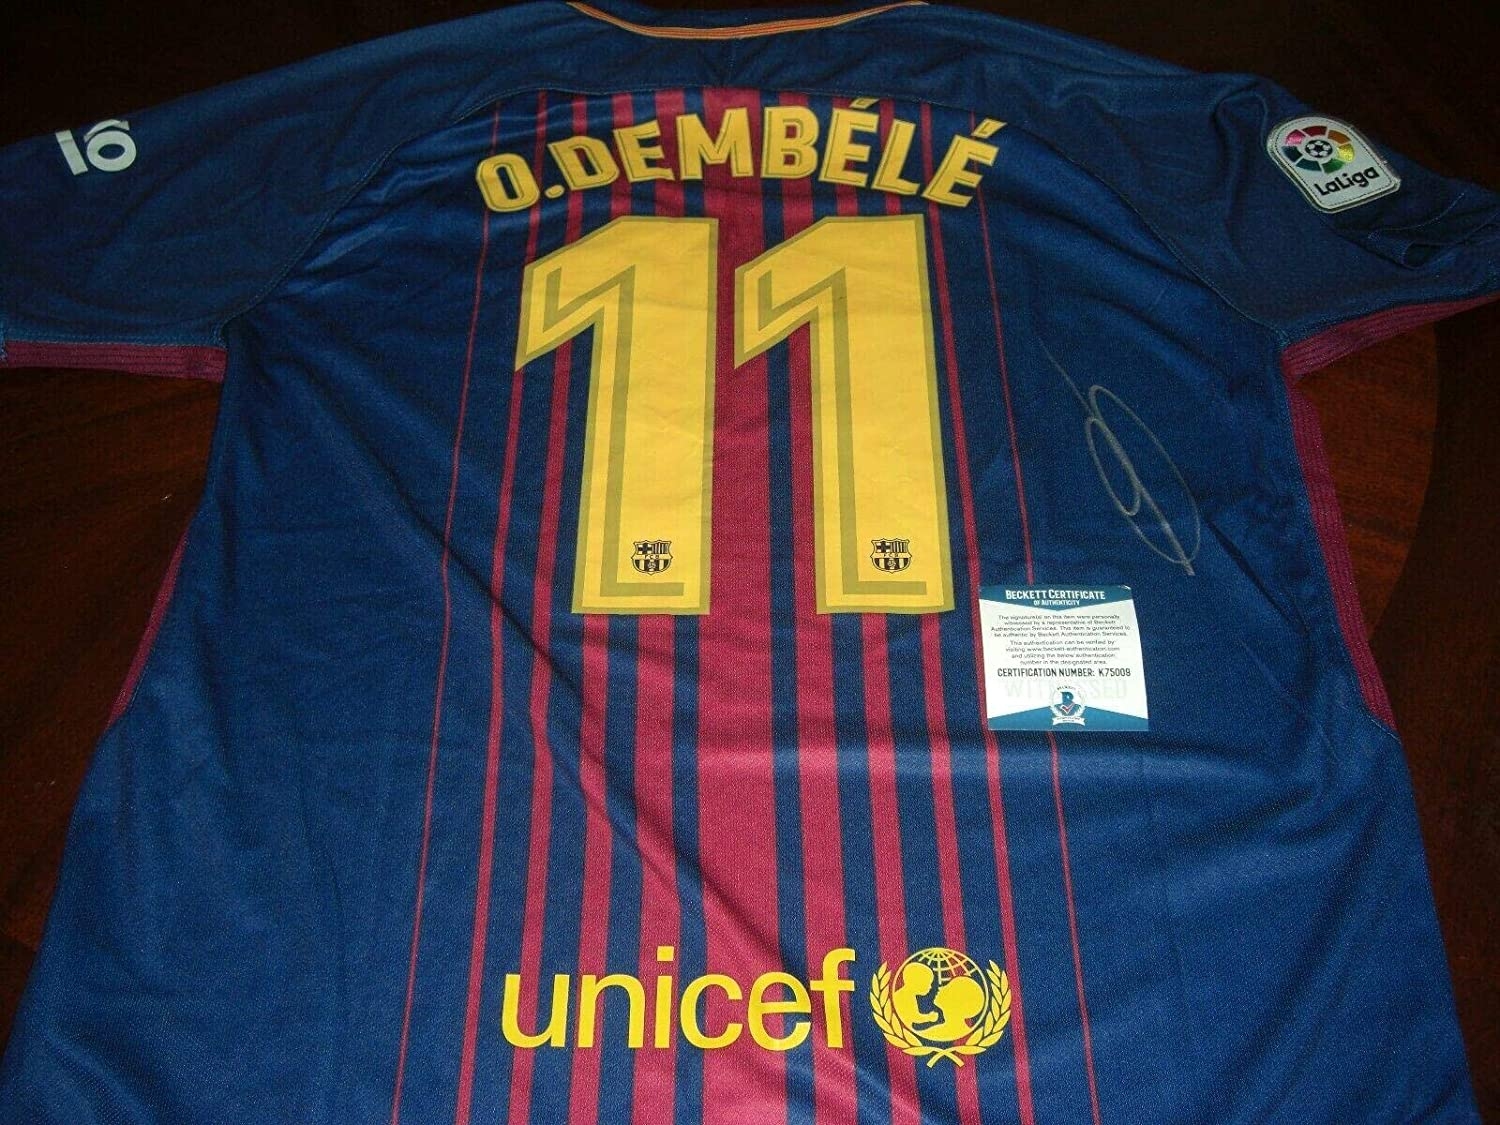 Ousmane Dembele Signed Jersey - France 2018 World Cup Champs Beckett coa - Beckett Authentication - Autographed Soccer Jerseys